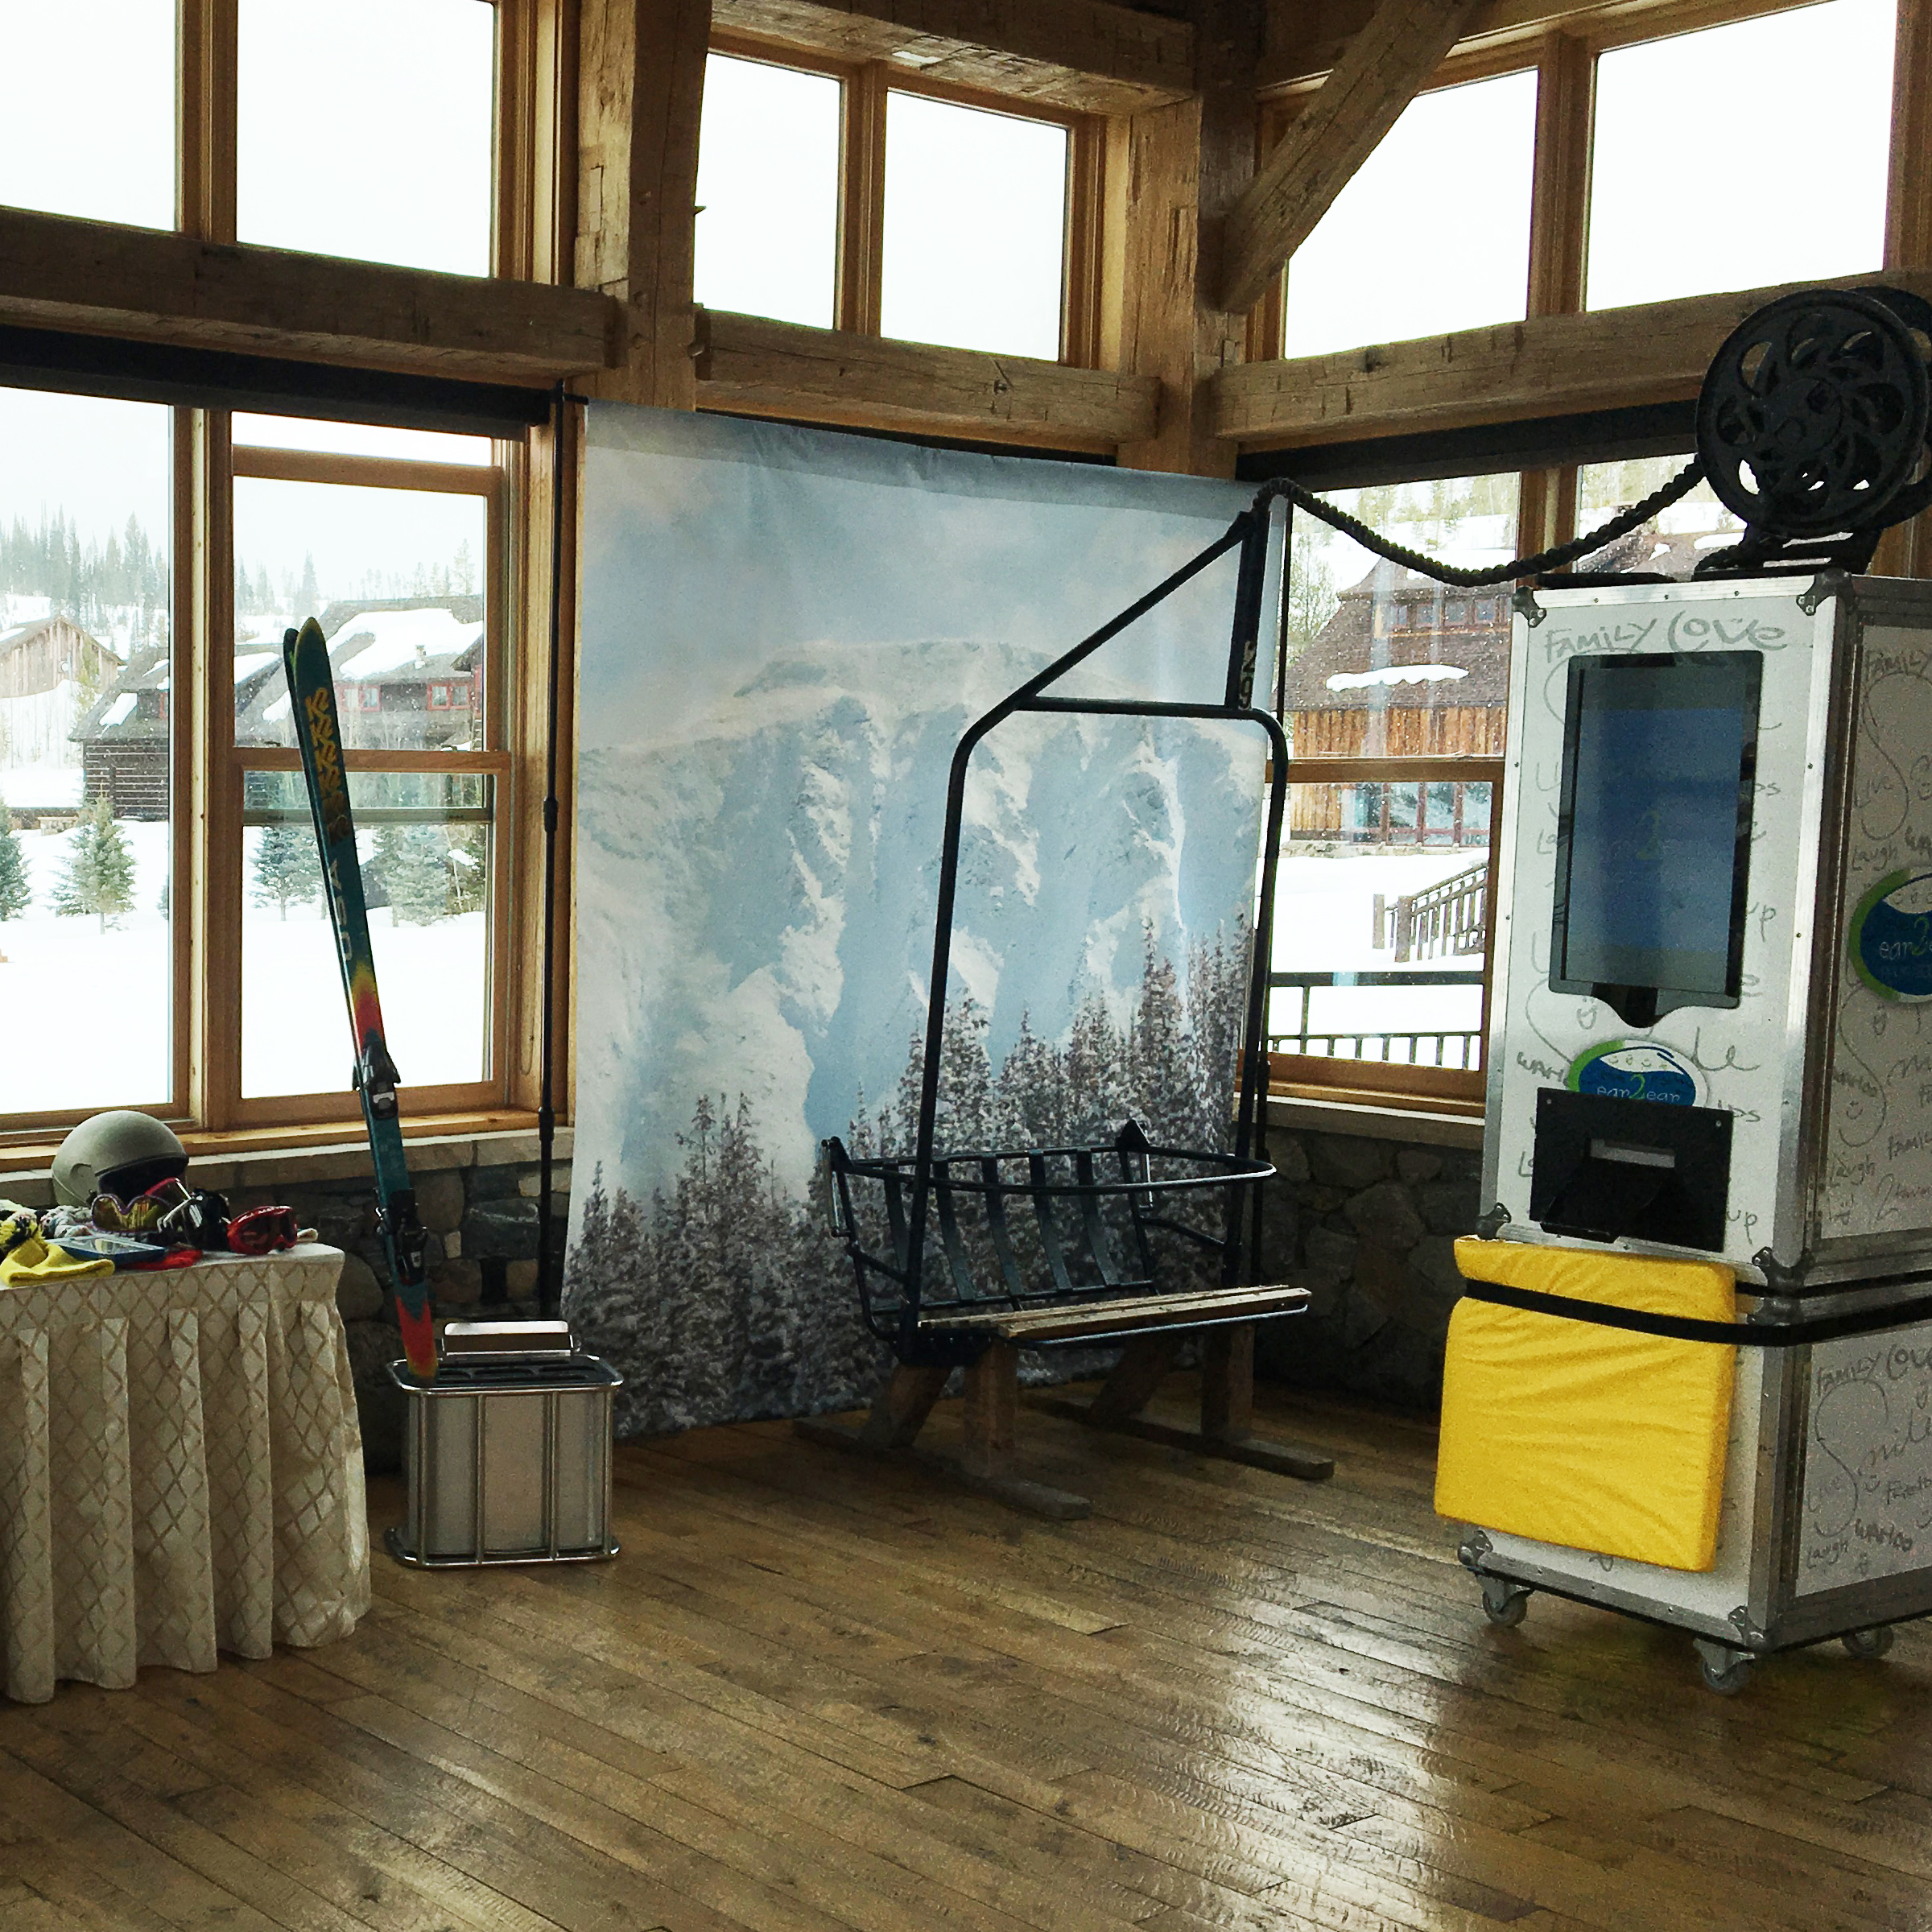 THE OPEN AIR SKI CHAIR BOOTH